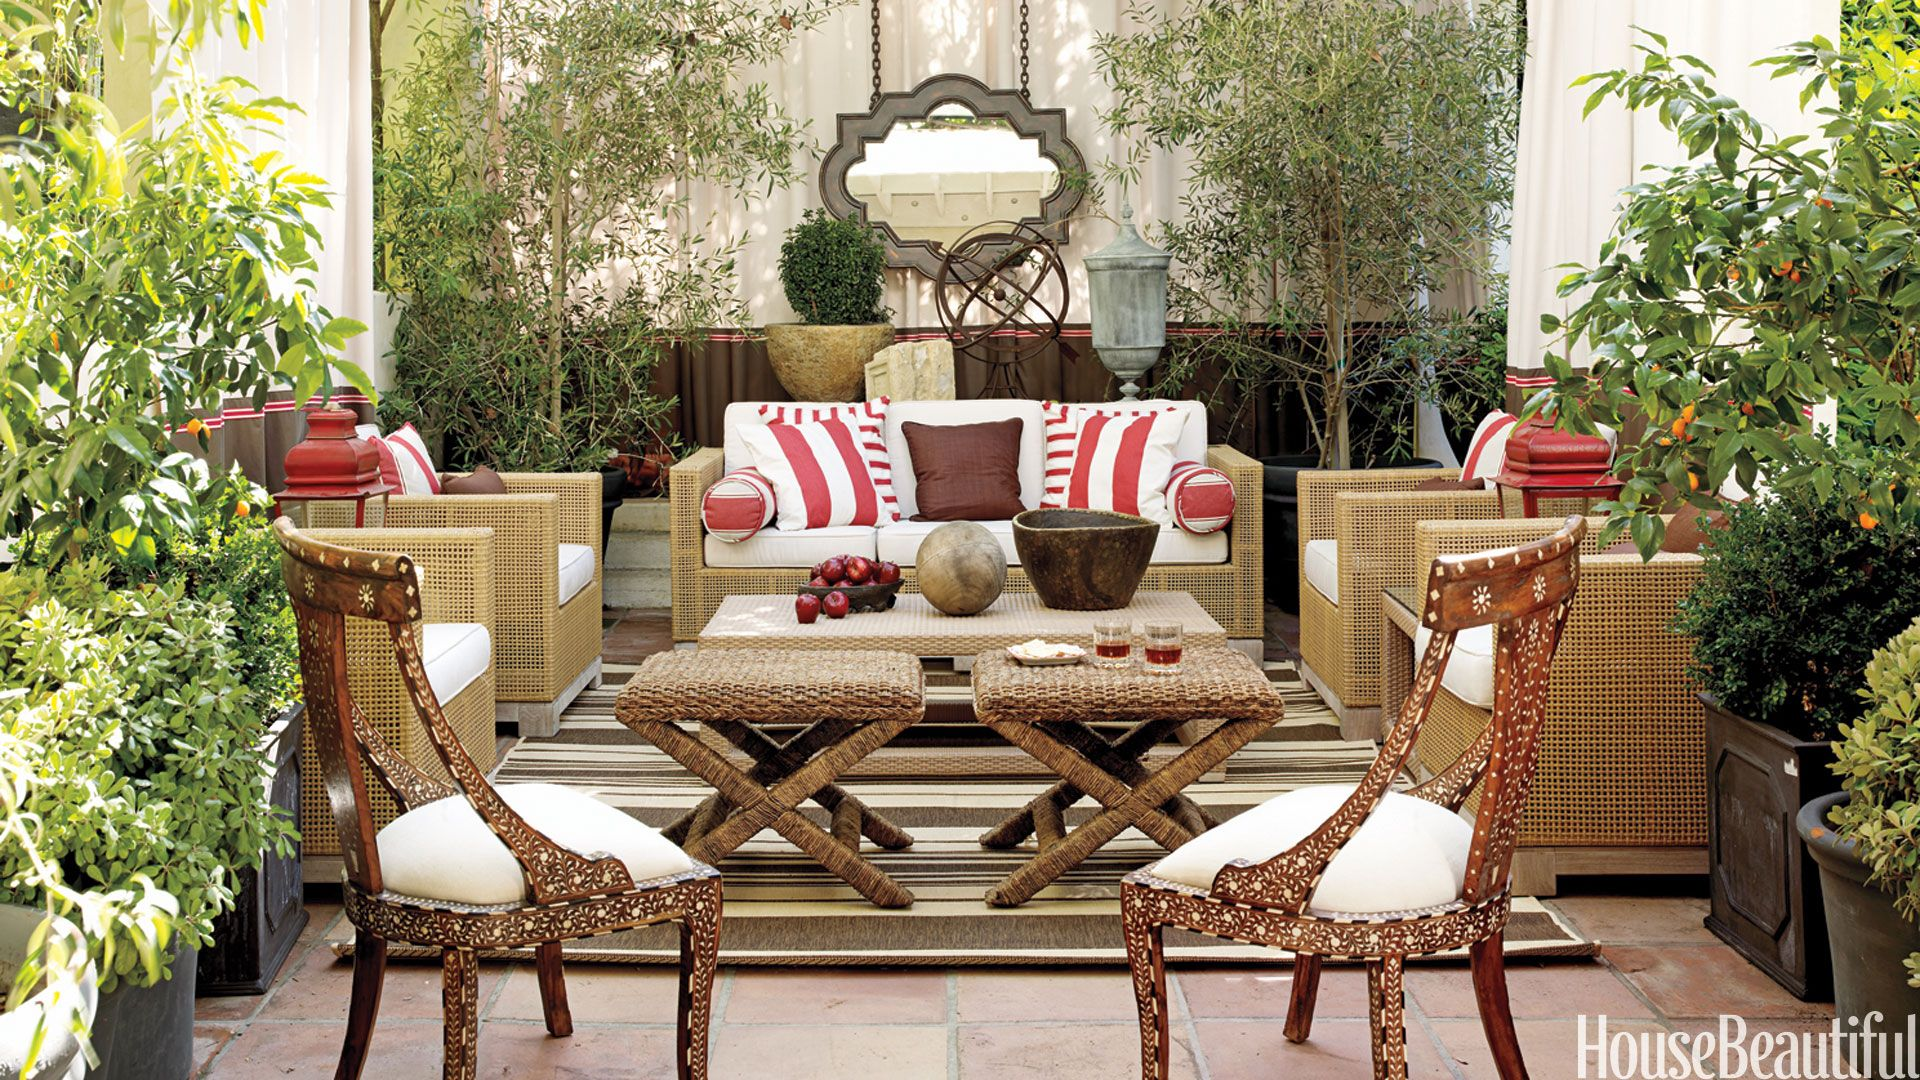 Outdoor decor ideas images